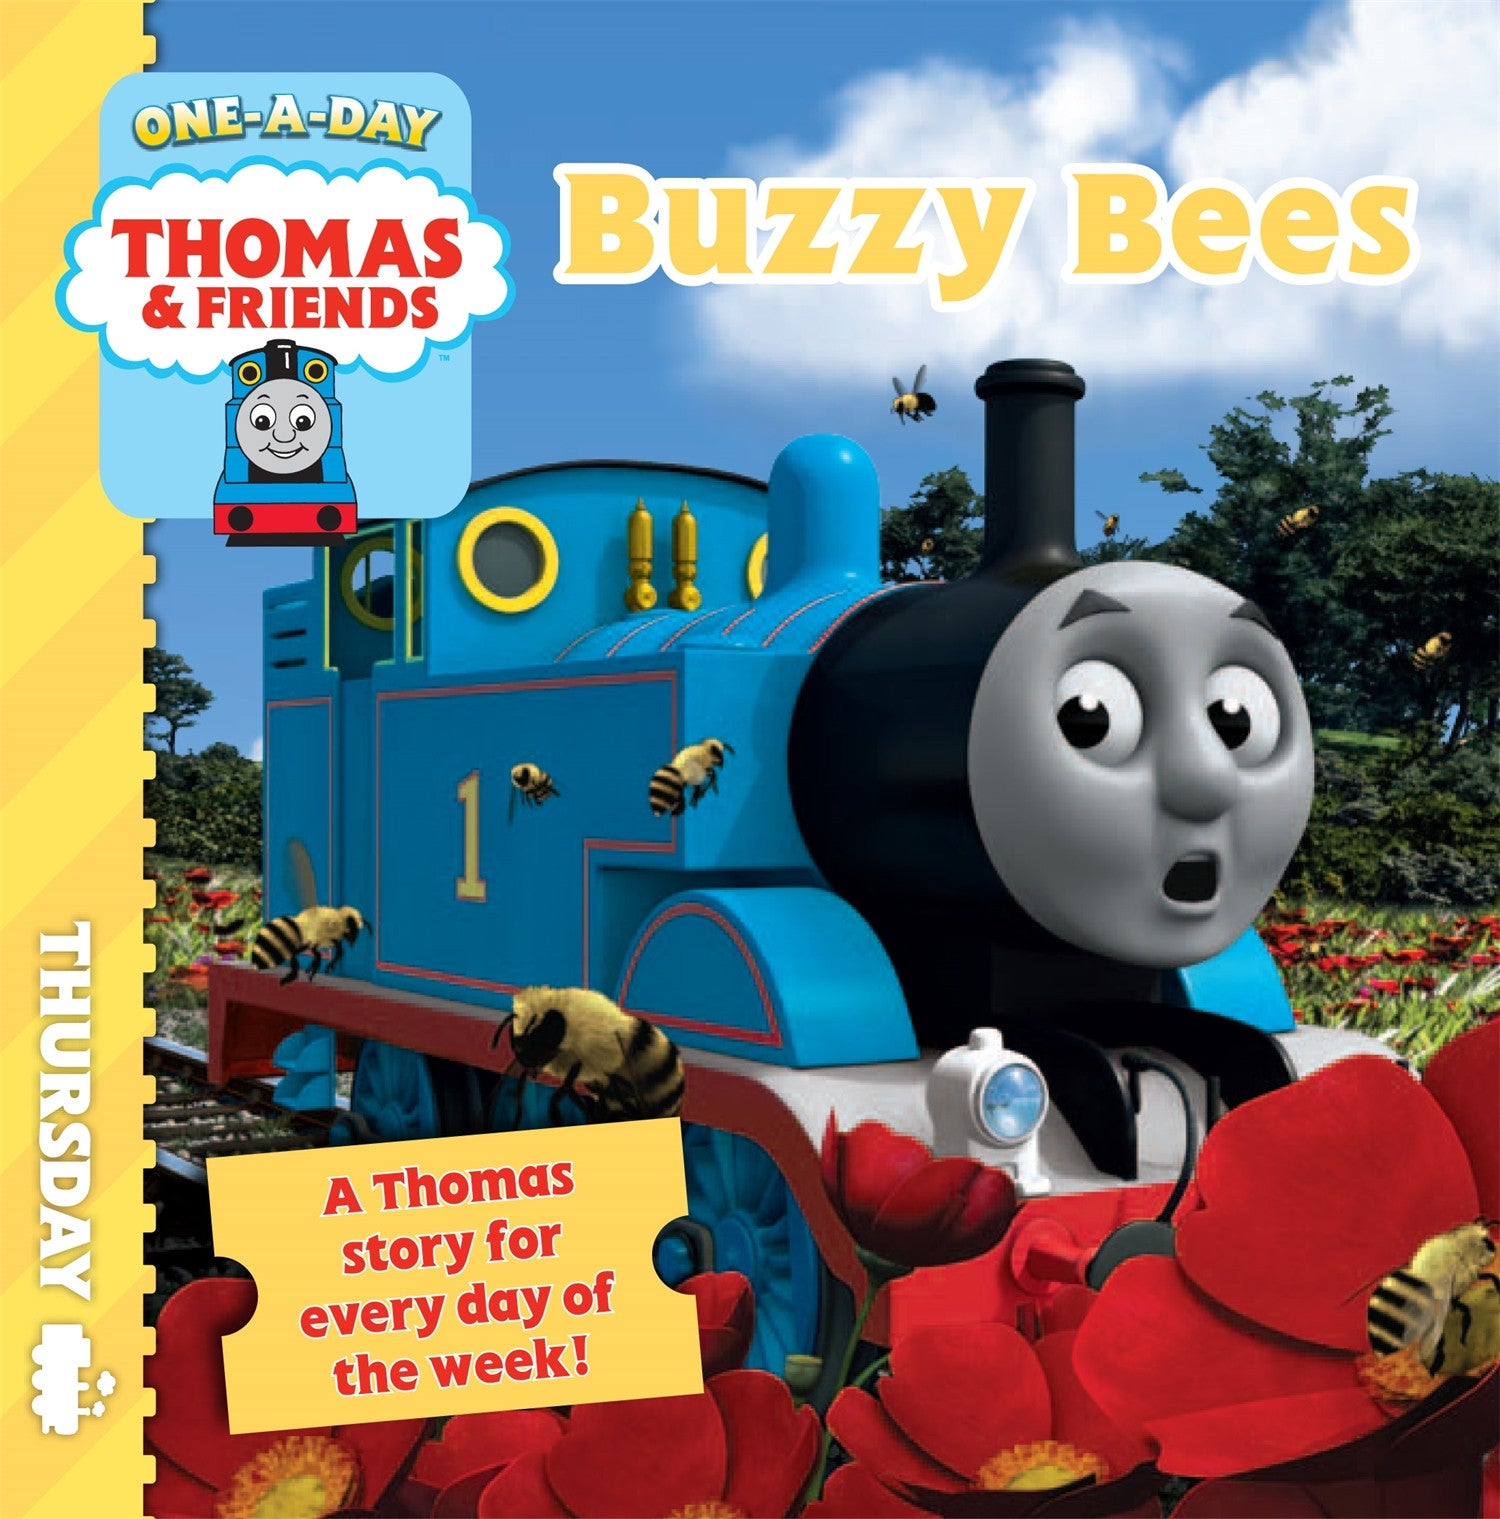 Buzzy Bees (Thomas & Friends)